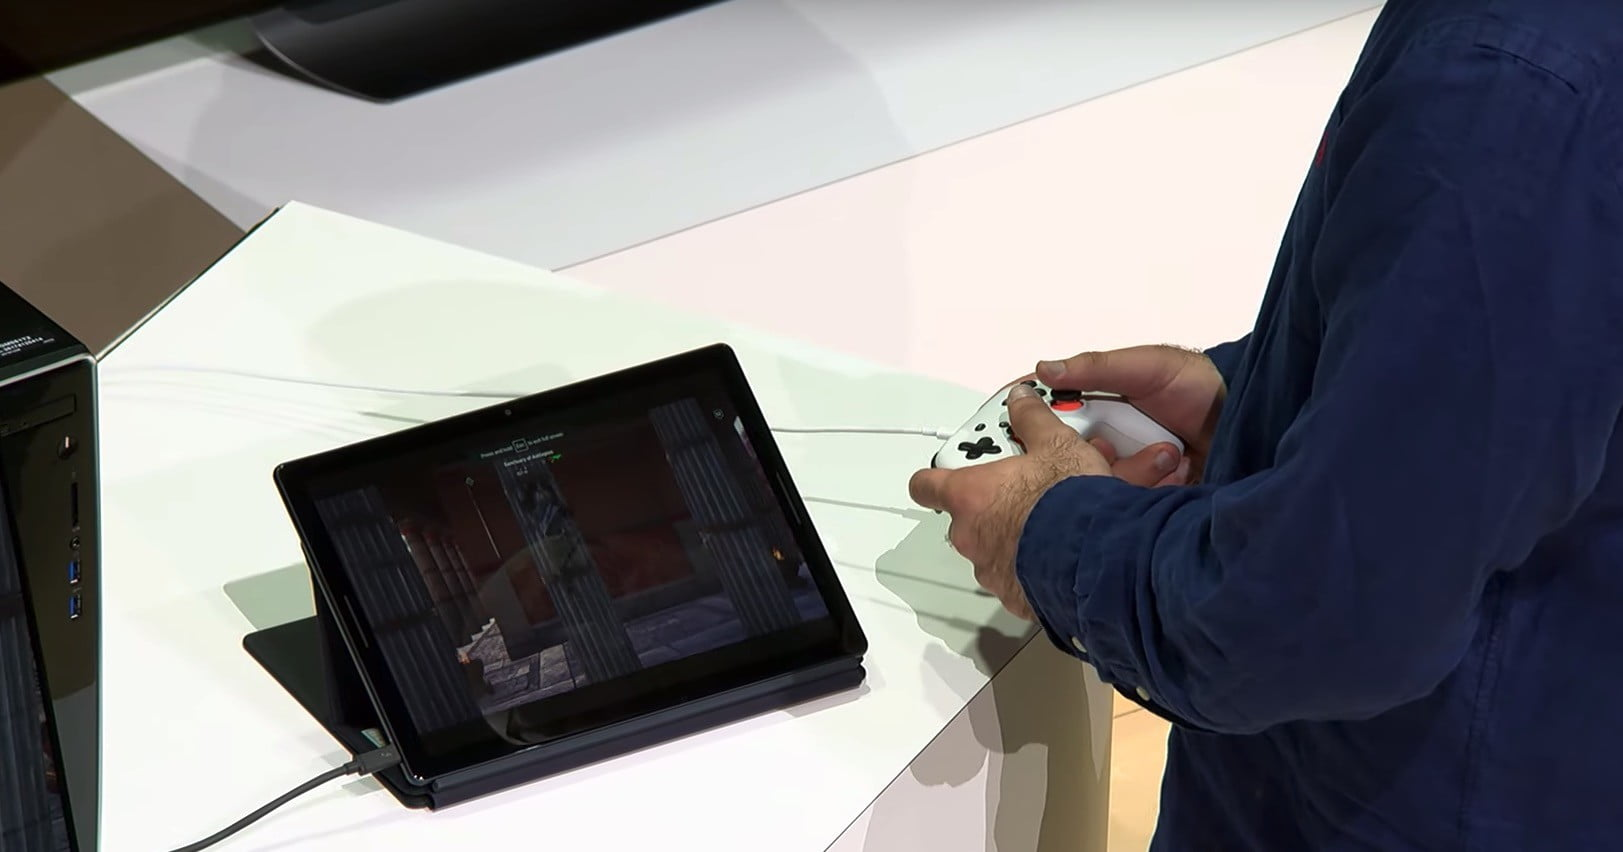 Say goodbye to consoles! Google's Stadia brings games to all platforms